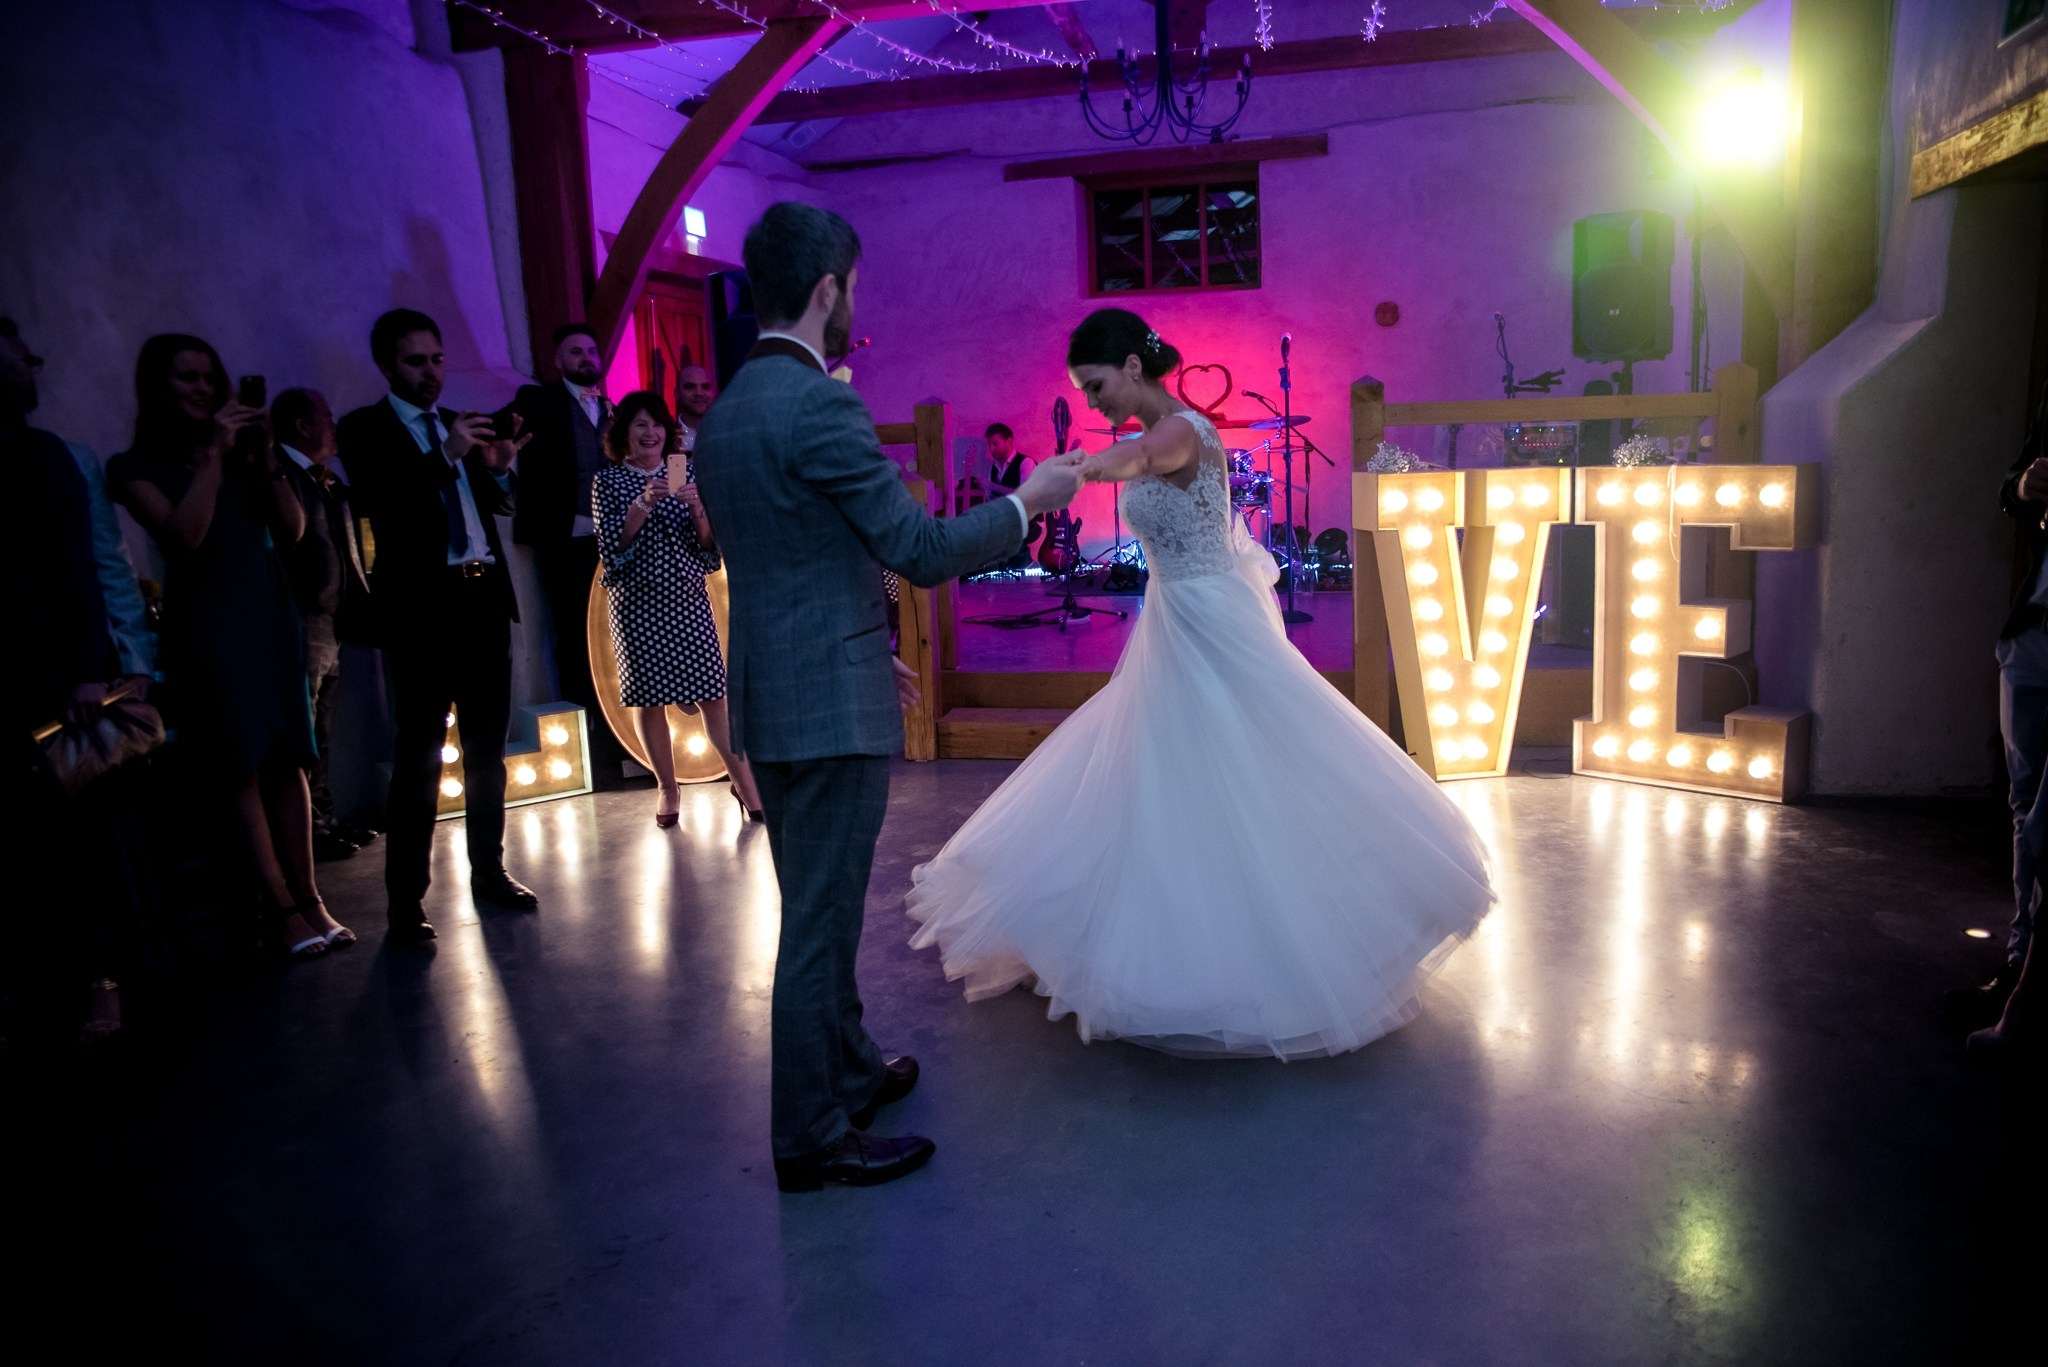 Bride and her groom sweep accross the dancefloor of the Cider Barn at Upton Barn & Walled Garden